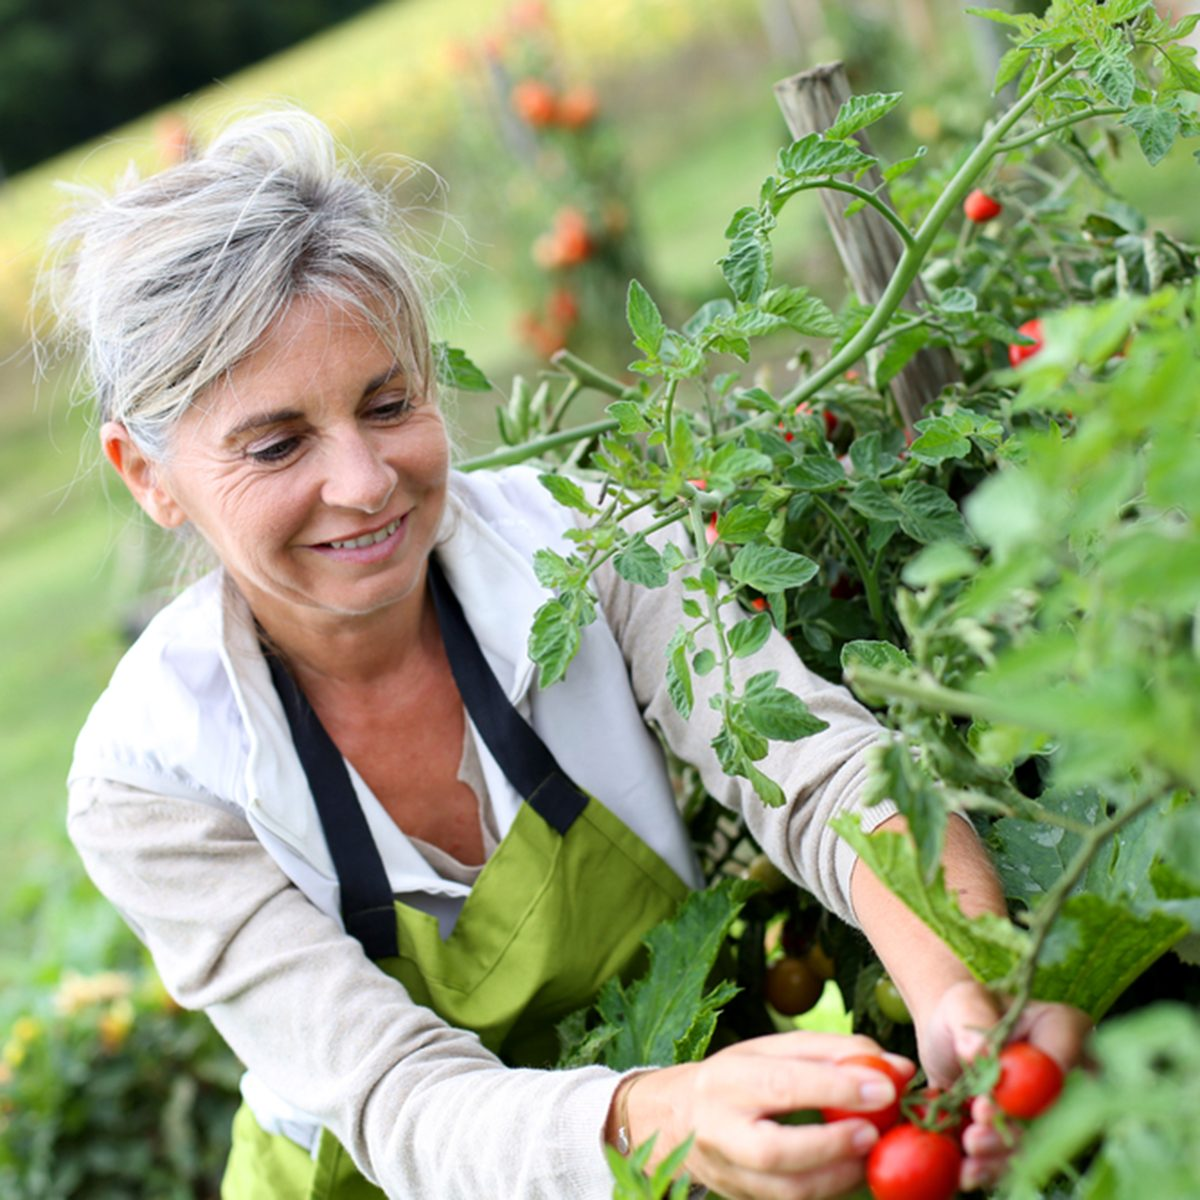 Senior woman picking tomatoes from vegetable garden